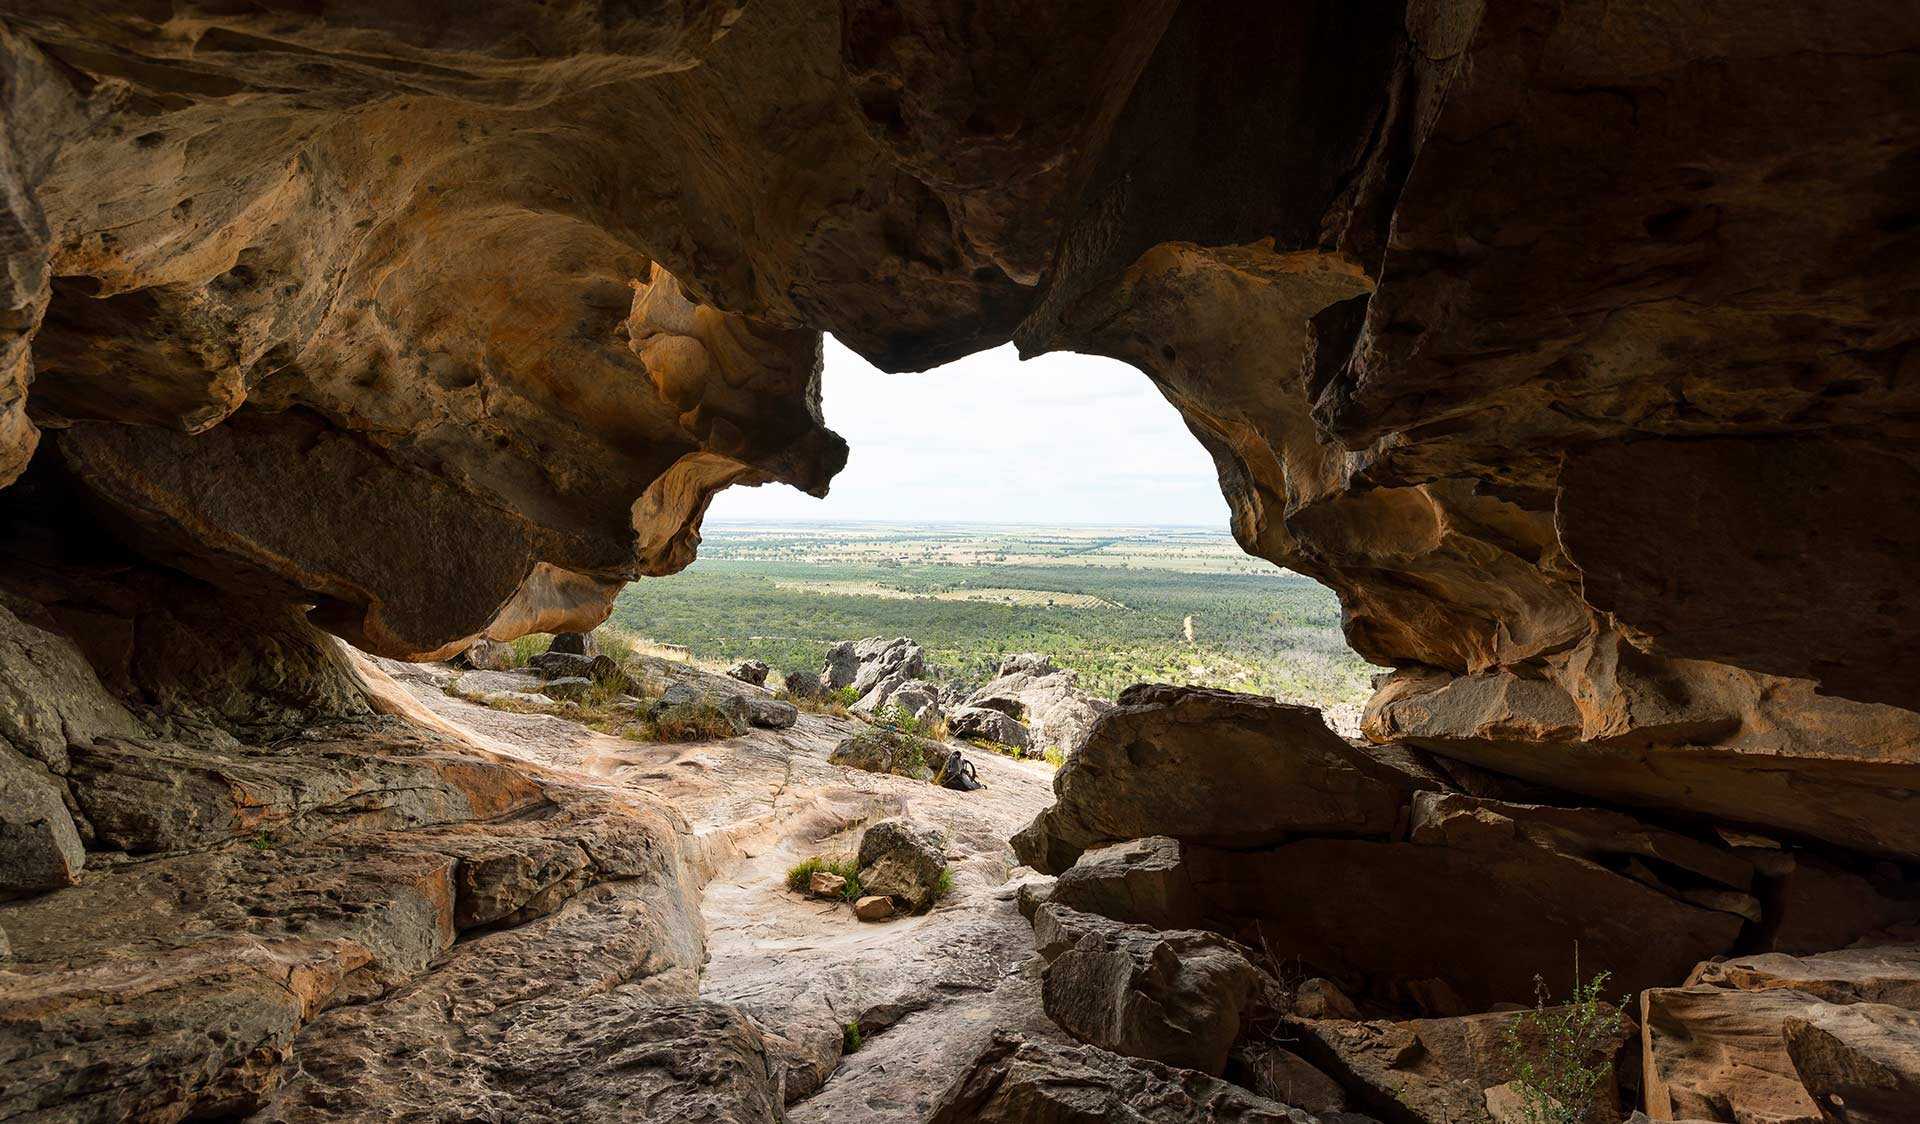 The view of the Wimmera plains through Hollow Mountain in the Grampians National Park.